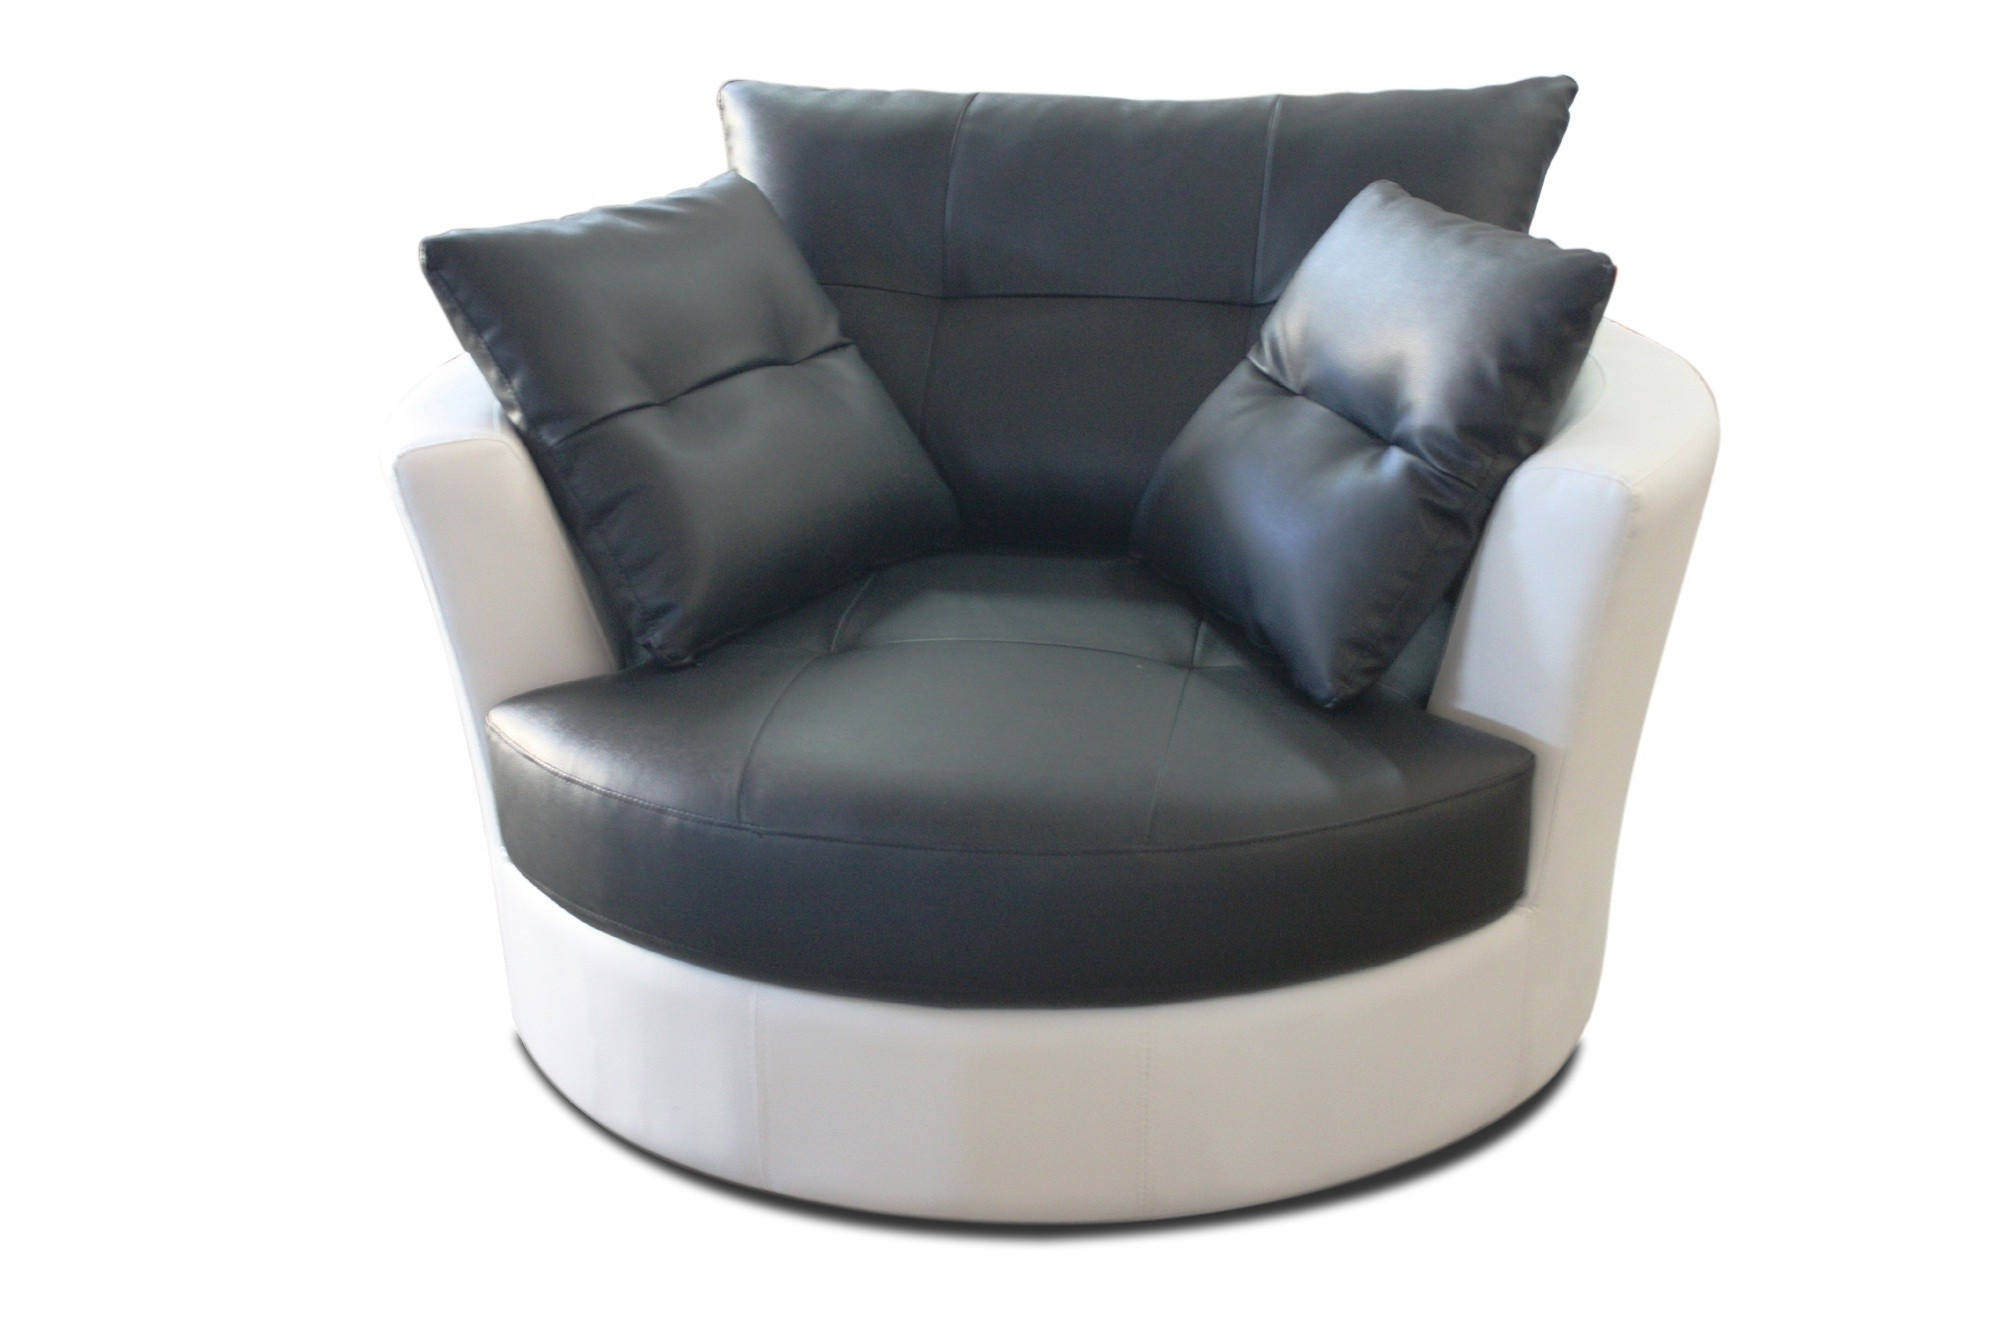 Fresh Swivel Sofa Chair 55 For Sofas And Couches Ideas With Swivel Inside Most Recently Released Swivel Sofa Chairs (View 10 of 15)